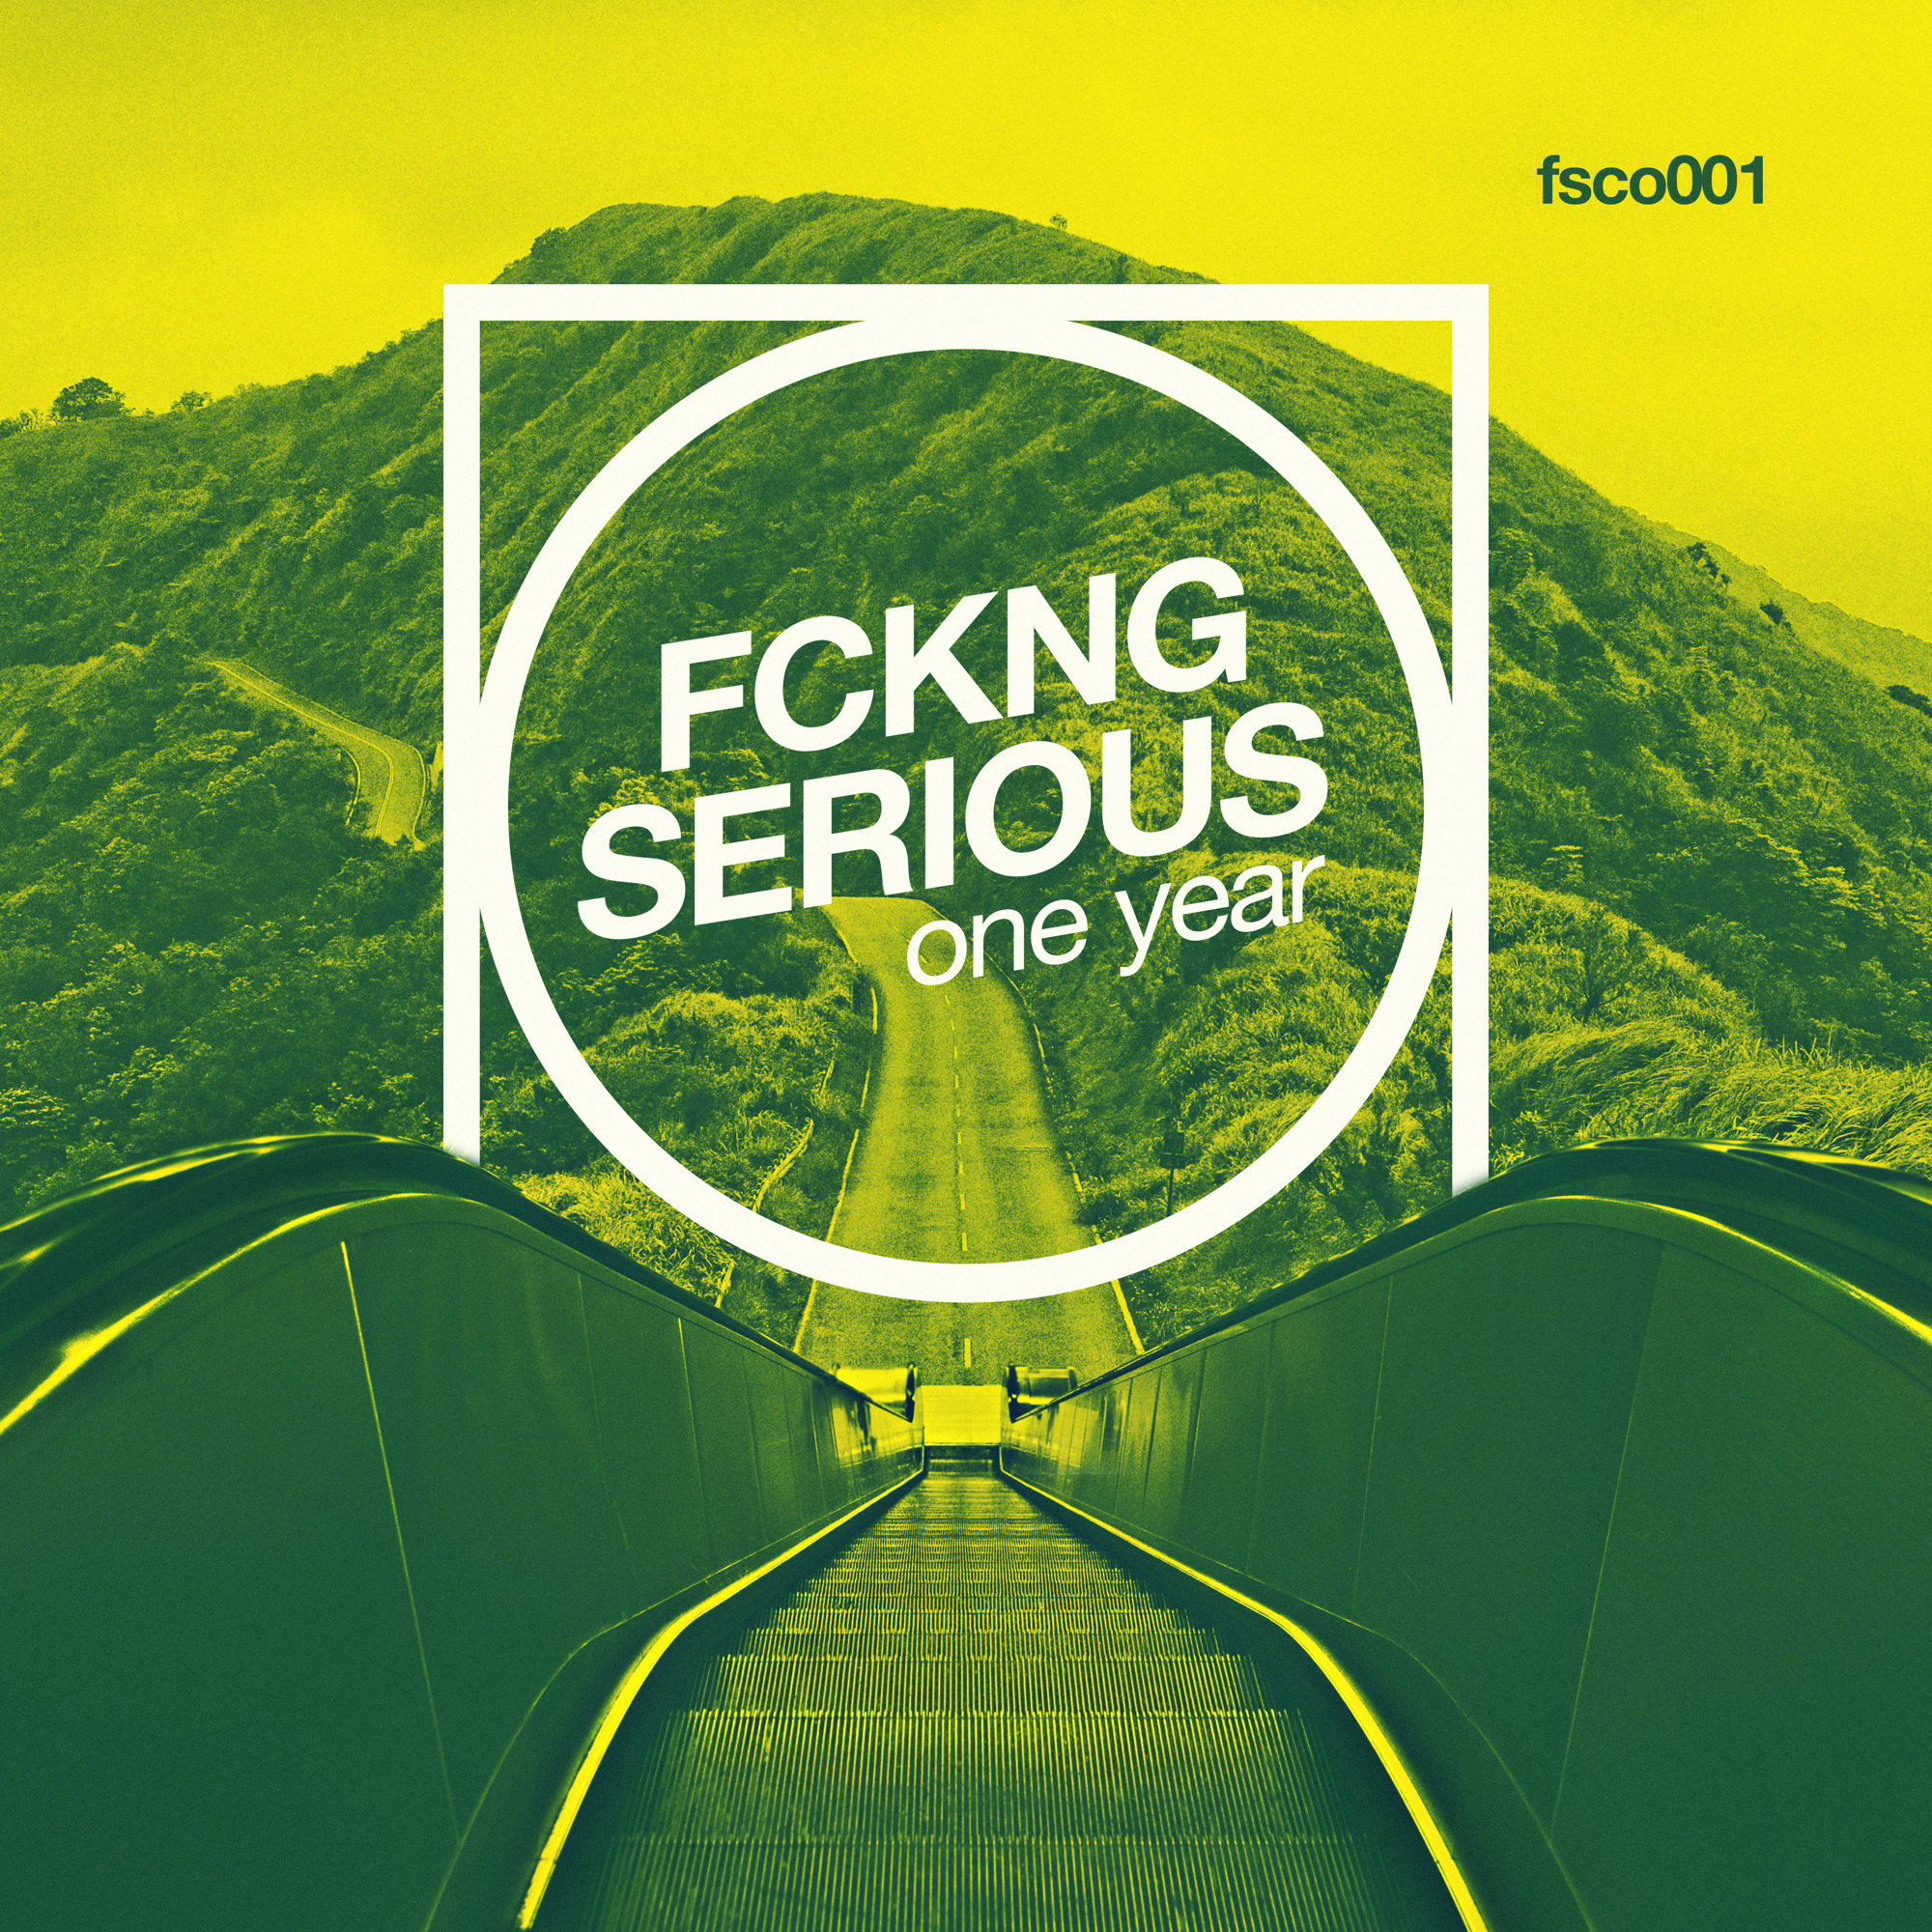 FCKNG SERIOUS - ONE YEAR - VARIOUS ARTISTSOne year is already over since we started our label work. Massive! Time is flying that fast. Our whole team like to thank all of you, for the support we got and all the massive label nights we were dancing together. Here we come with our